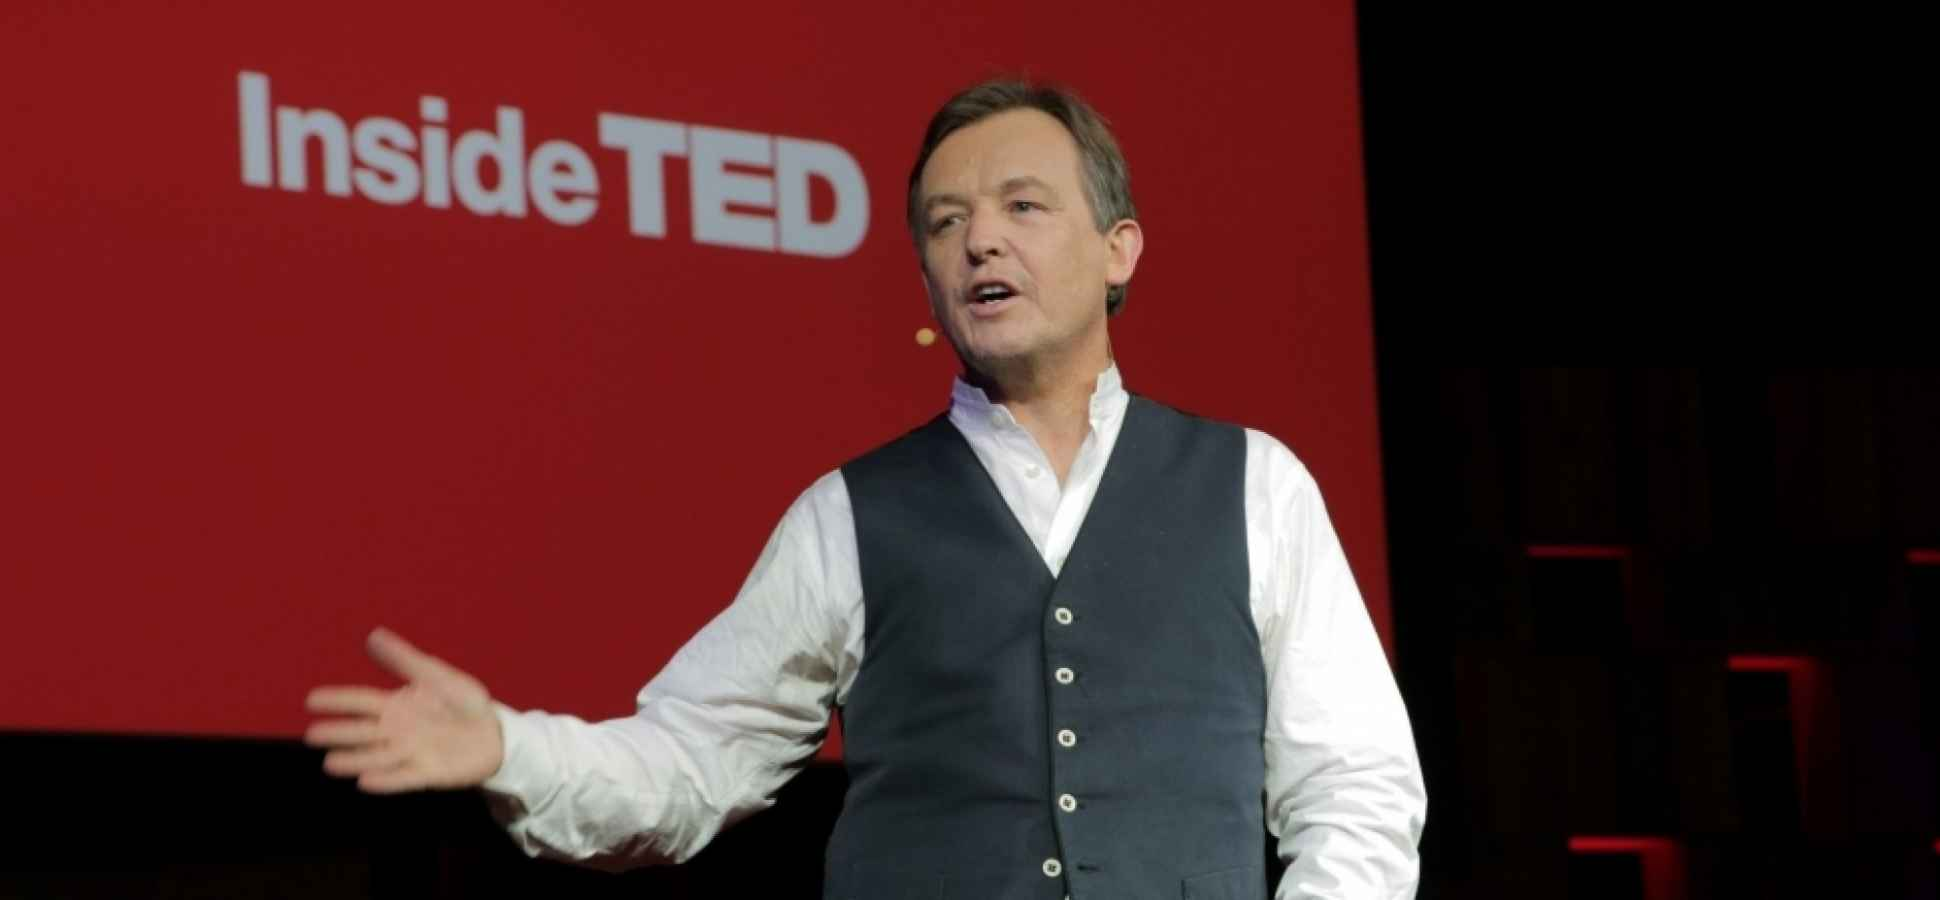 5 Mind-Blowing TED Talks You Need to Experience